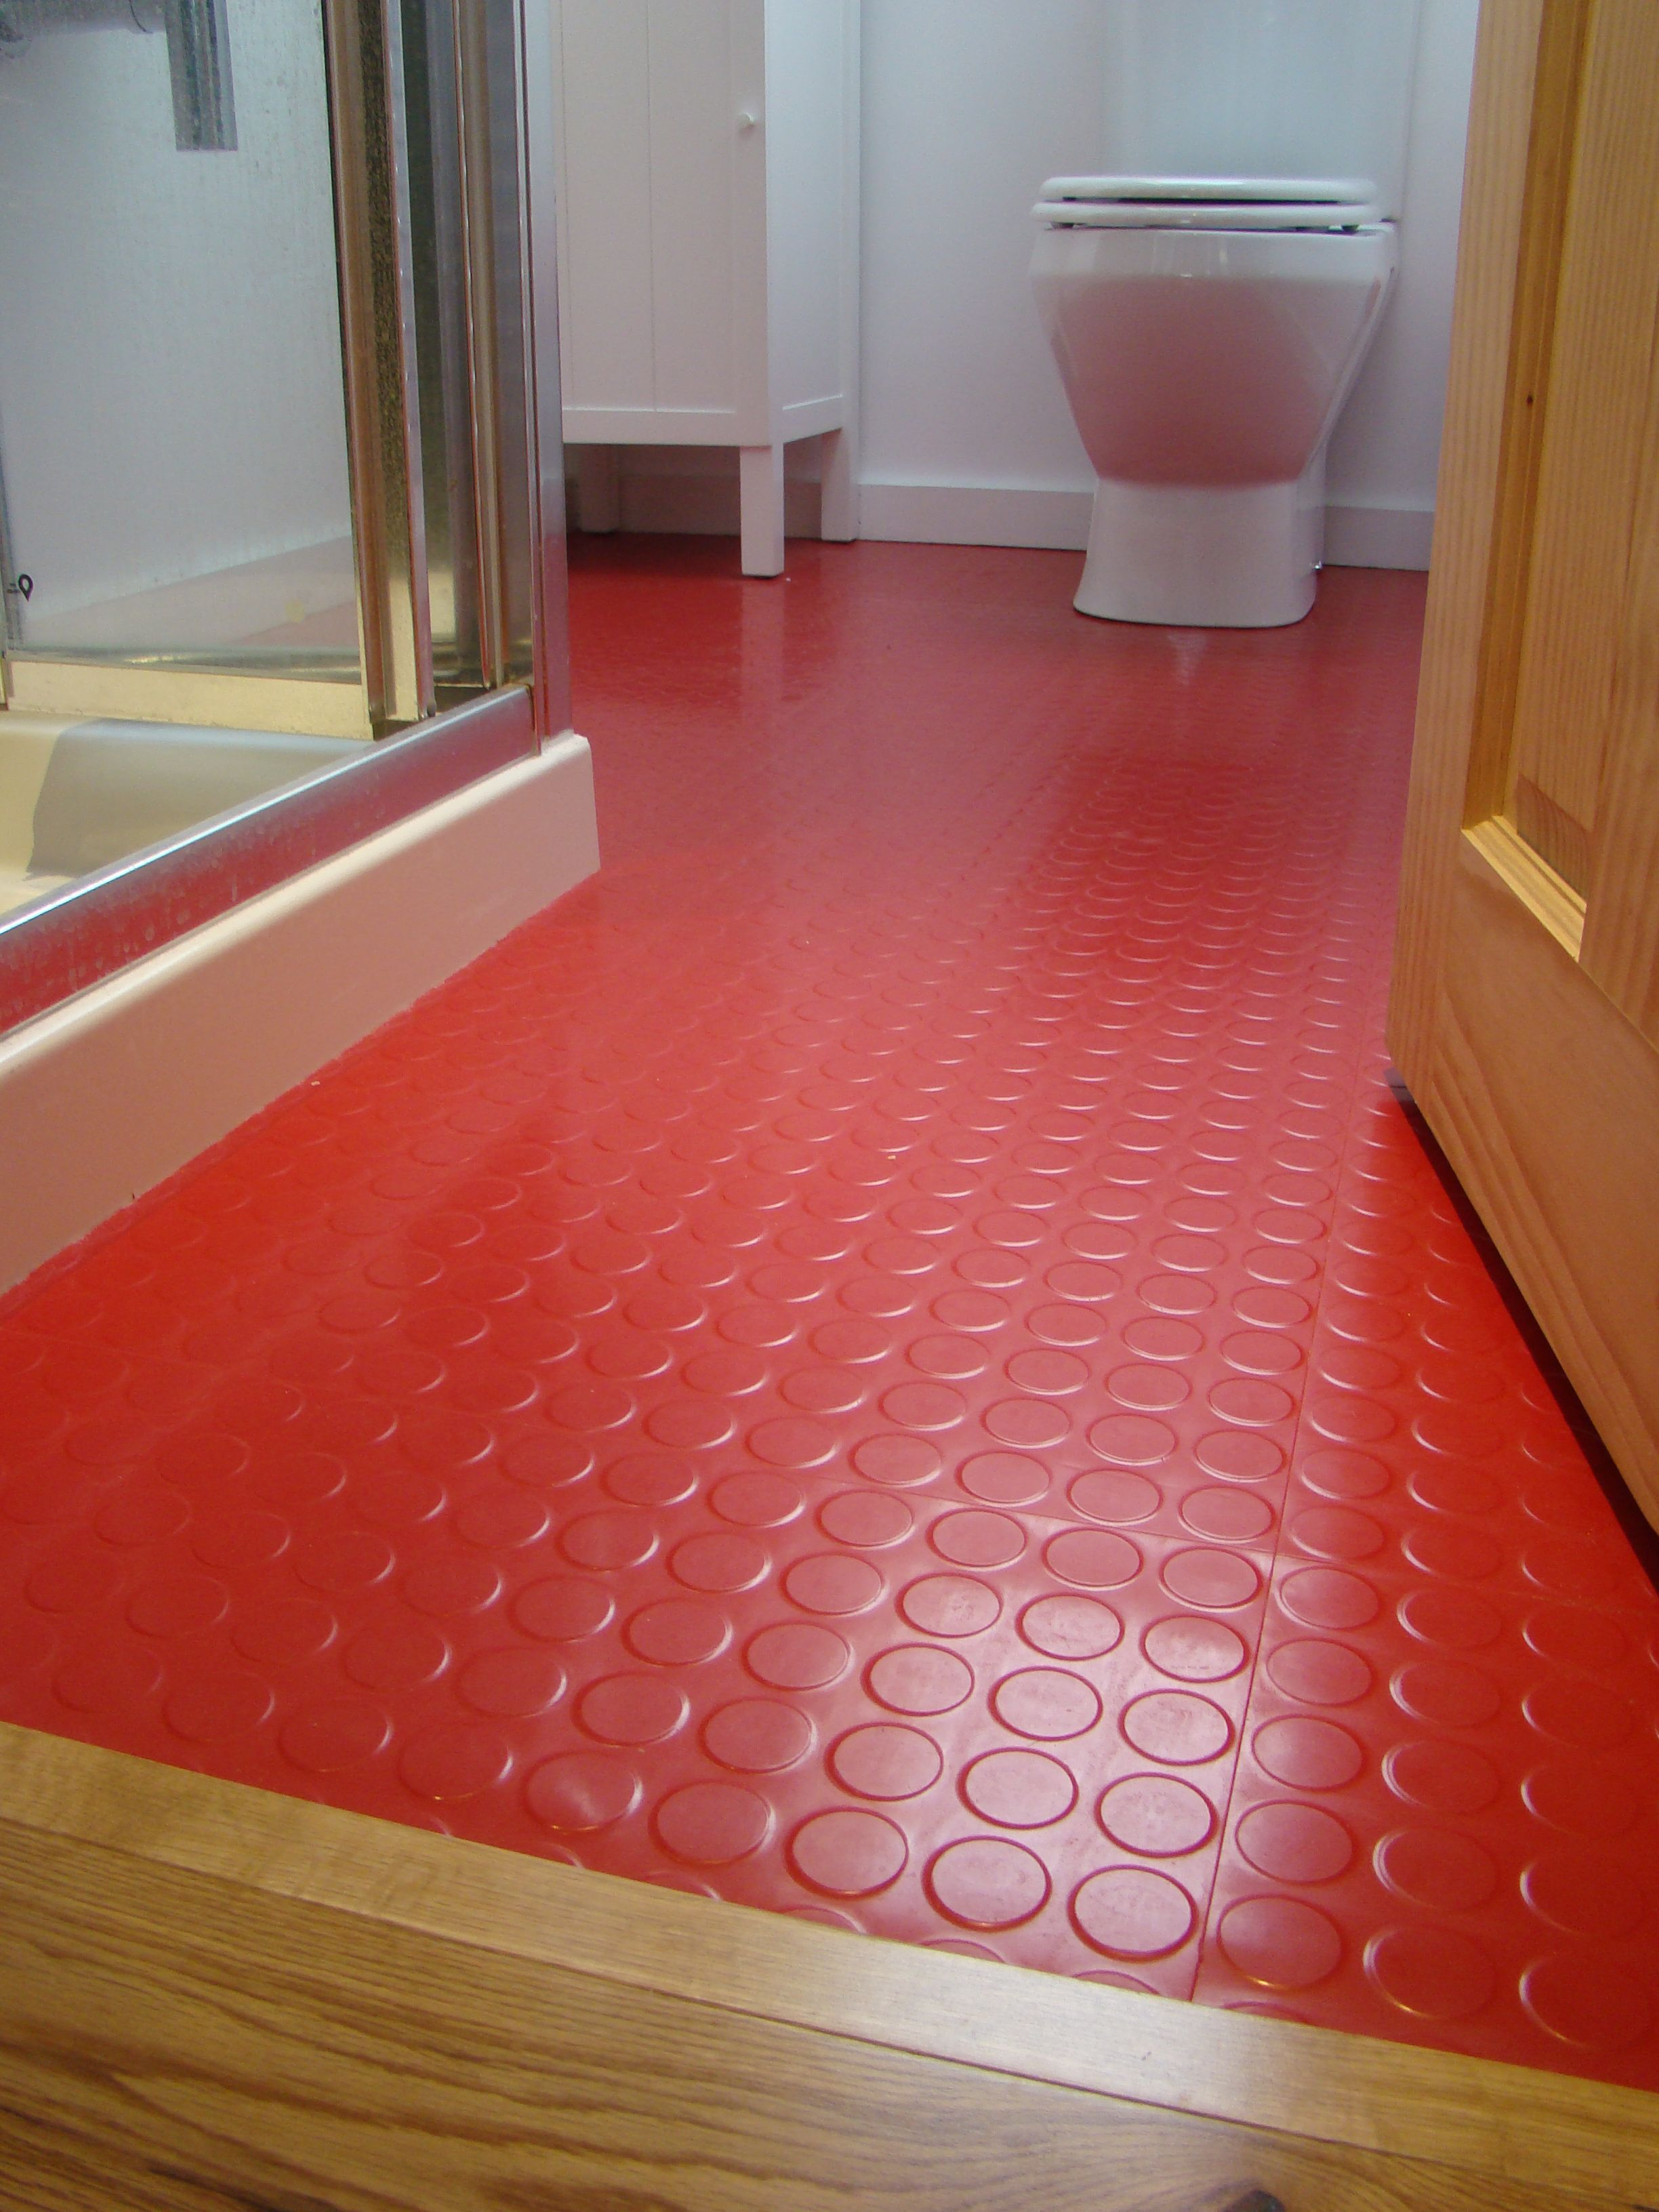 Red rubber flooring from polyflor in bathroom bathroom red rubber flooring from polyflor in bathroom dailygadgetfo Choice Image